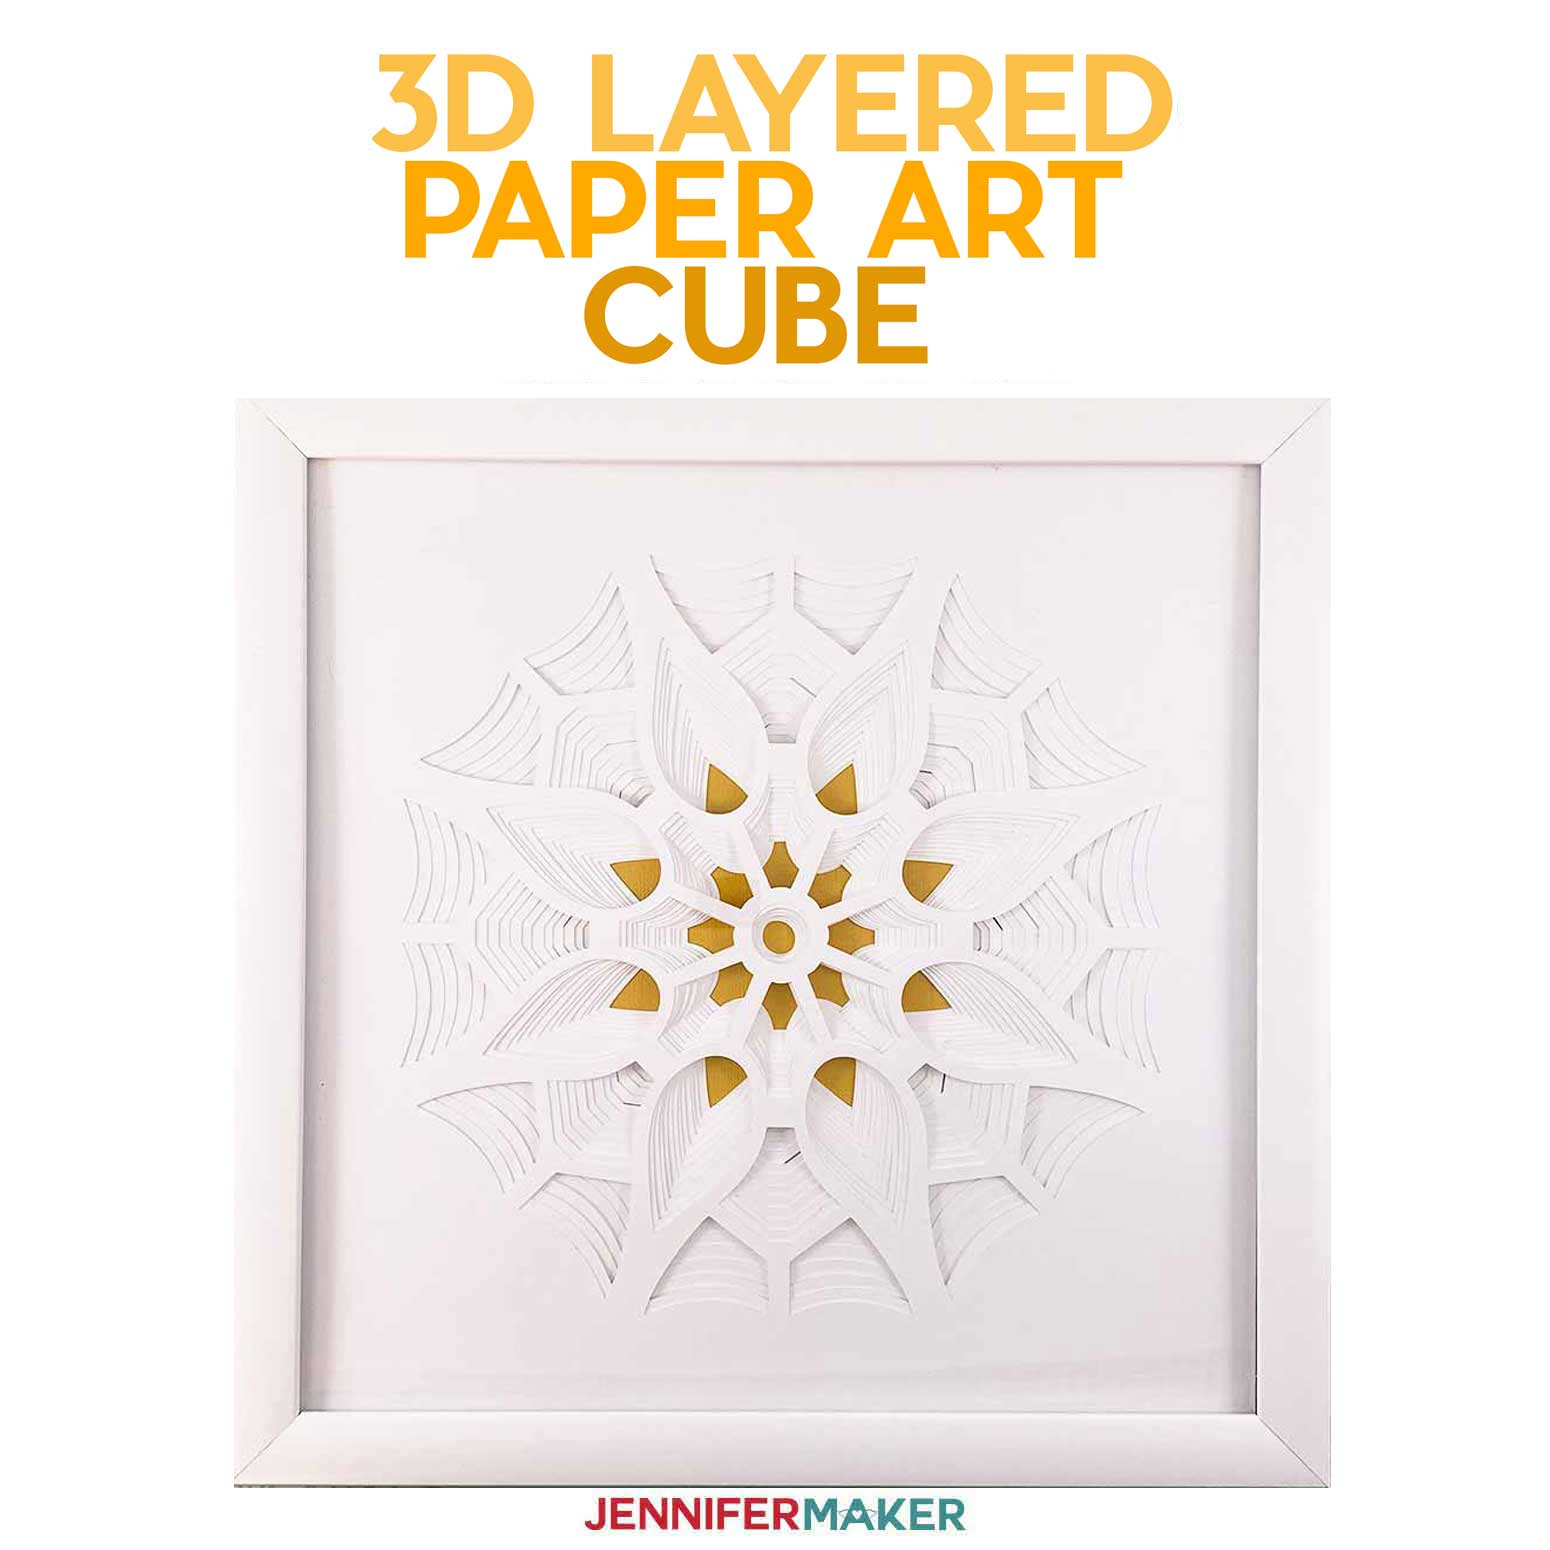 3D Layered Paper Art: The Cube (Series 3 of 4)